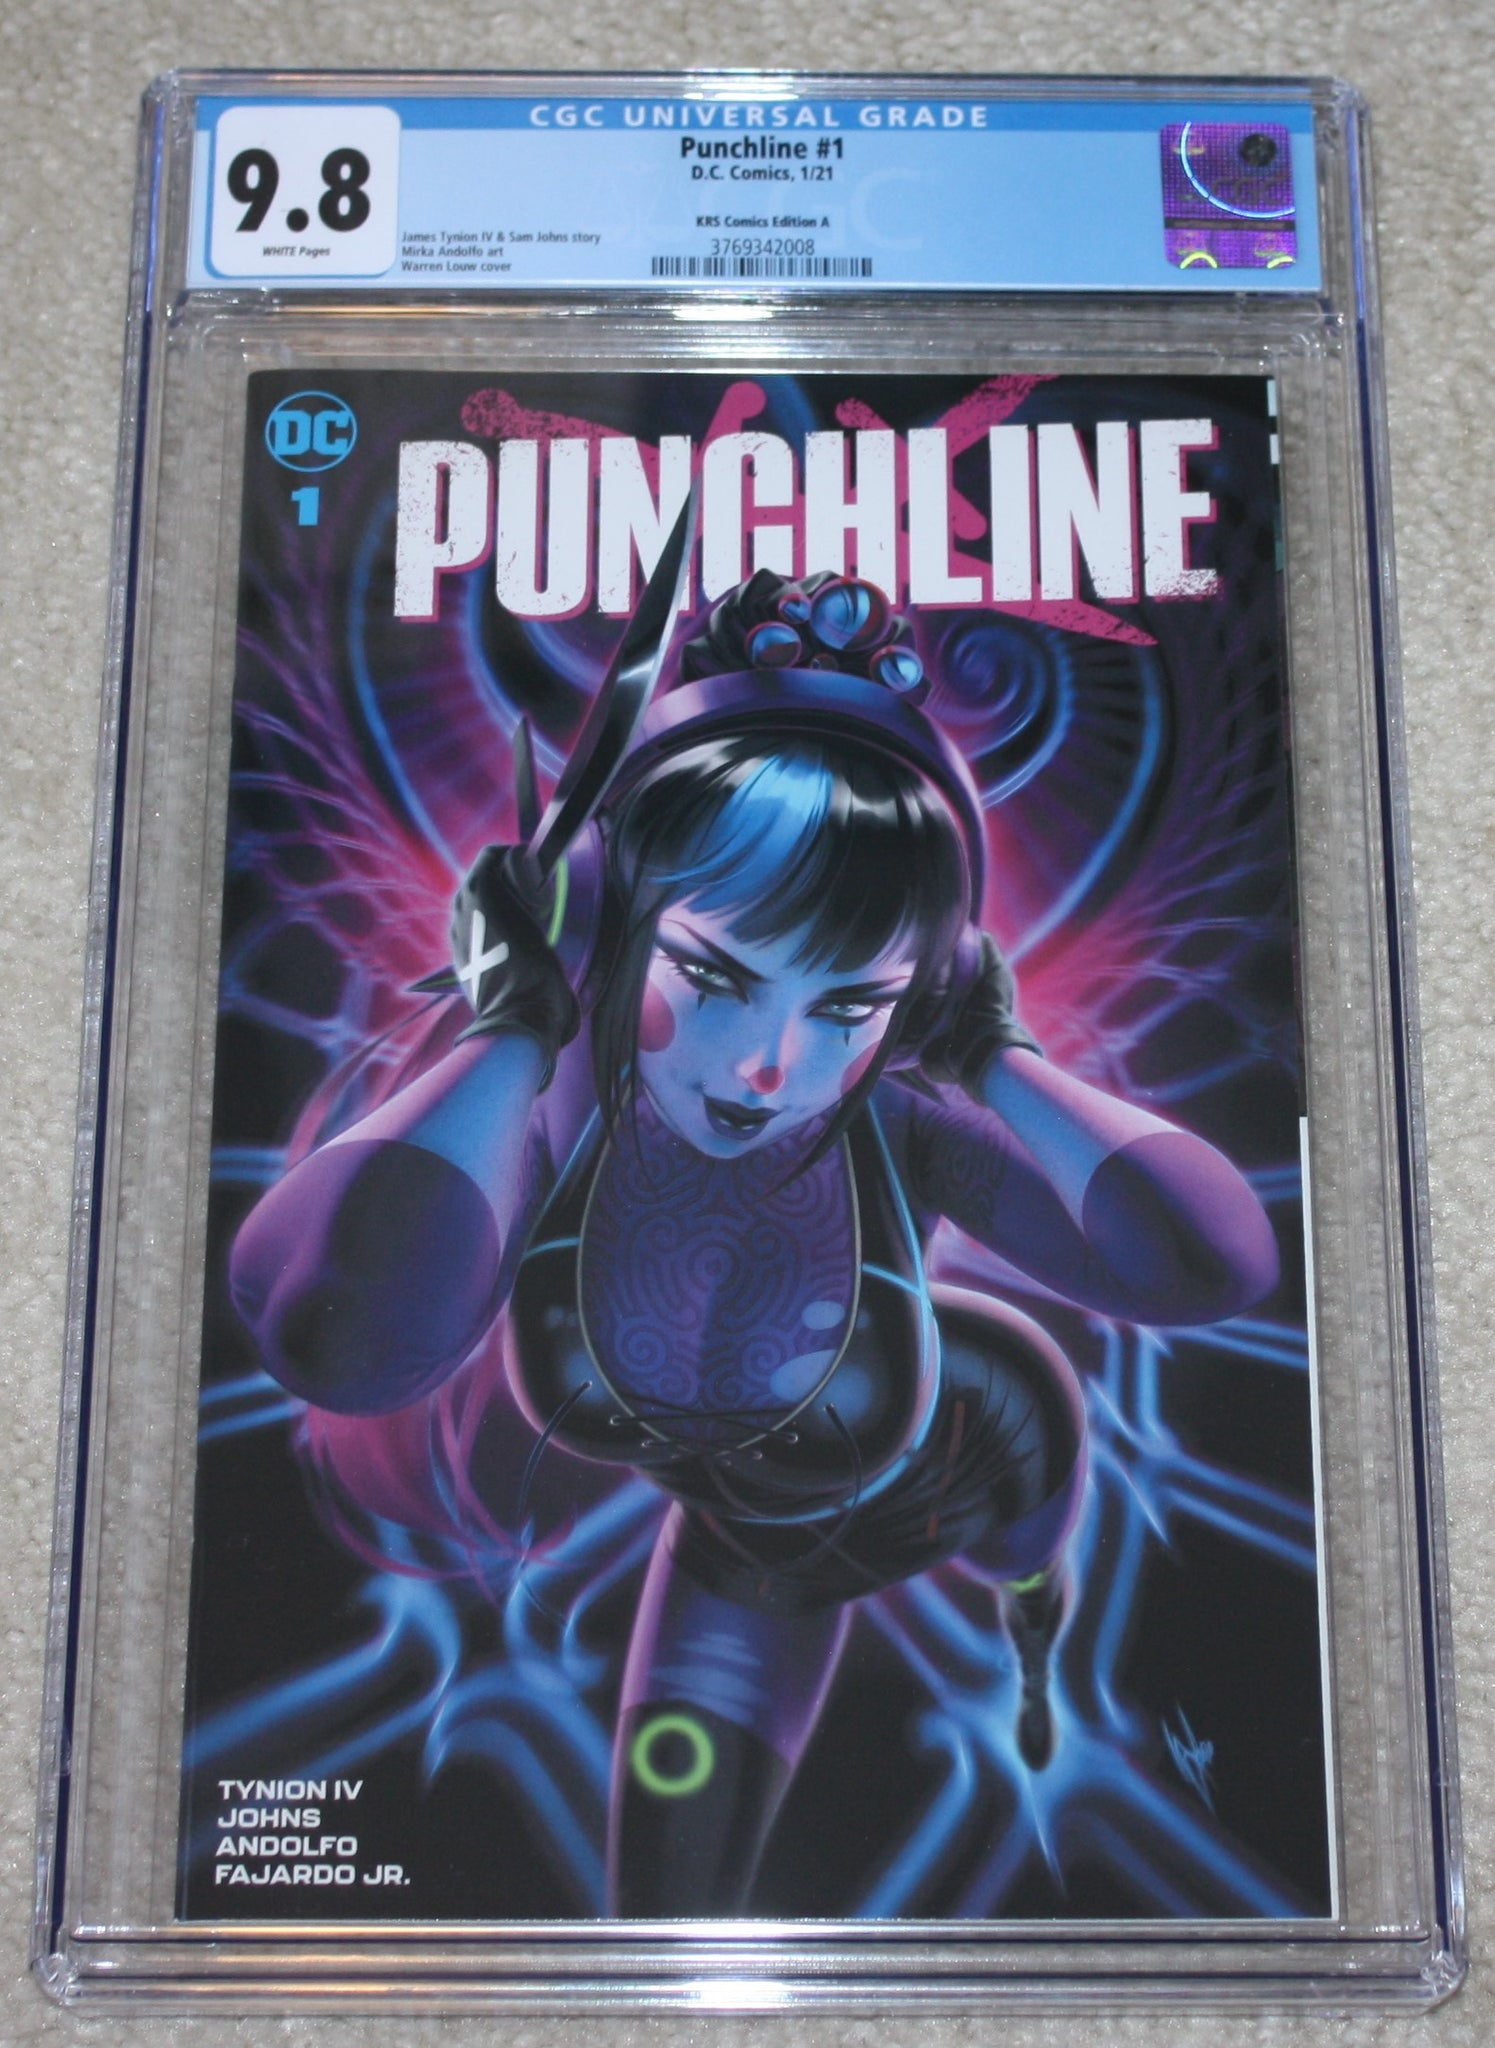 Punchline 1 Harley Quinn Warren Louw Batman Variant DC Comics Marvel Comics X-Men East Side Comics Virgin Exclusive cgc signed ss comics